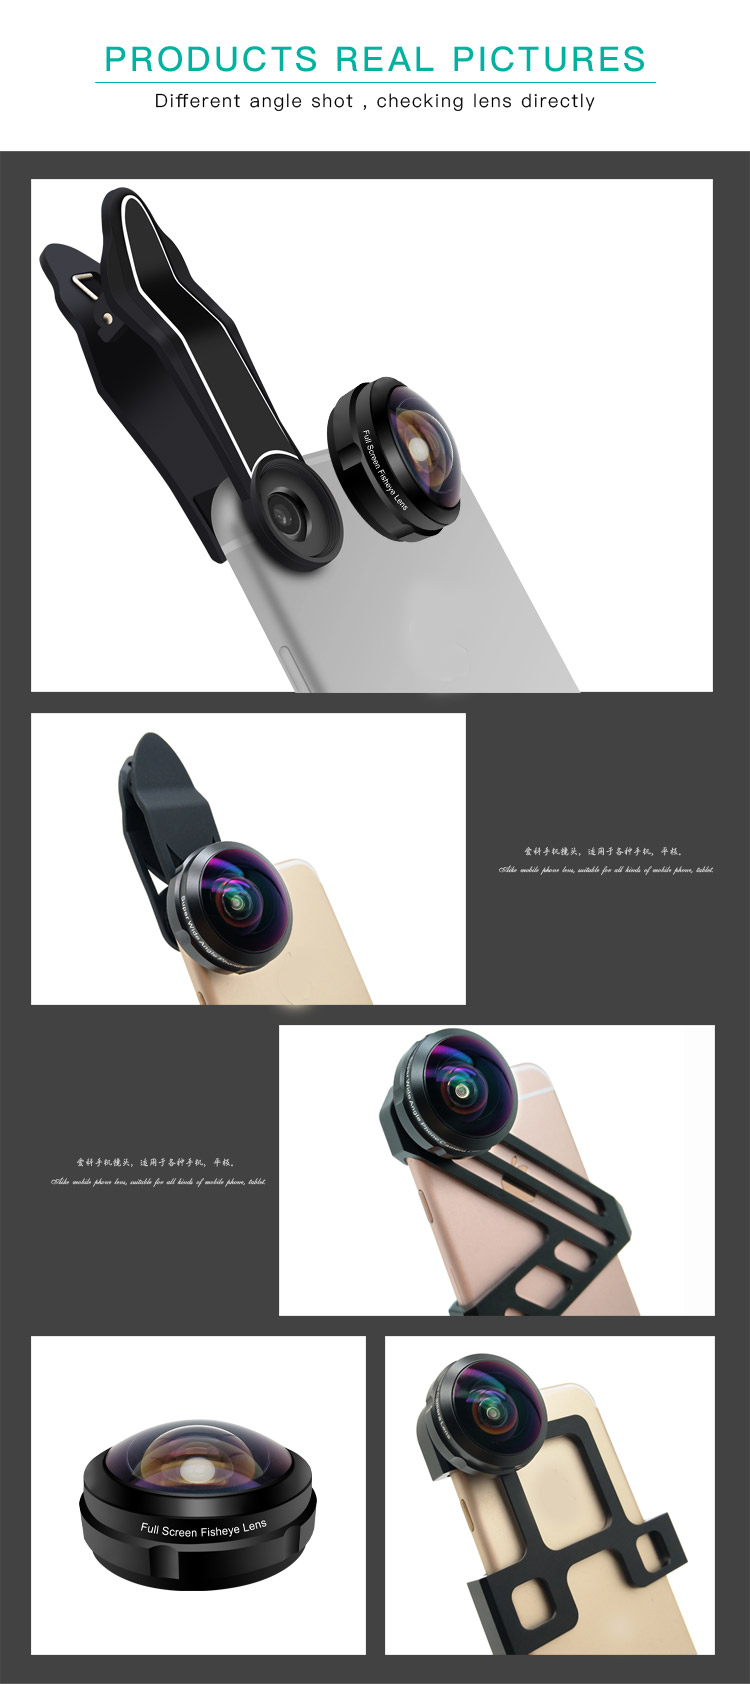 Super HD Full Screen 238 degree Fisheye Lens For Smart Phone Camera Optical Glass Lens